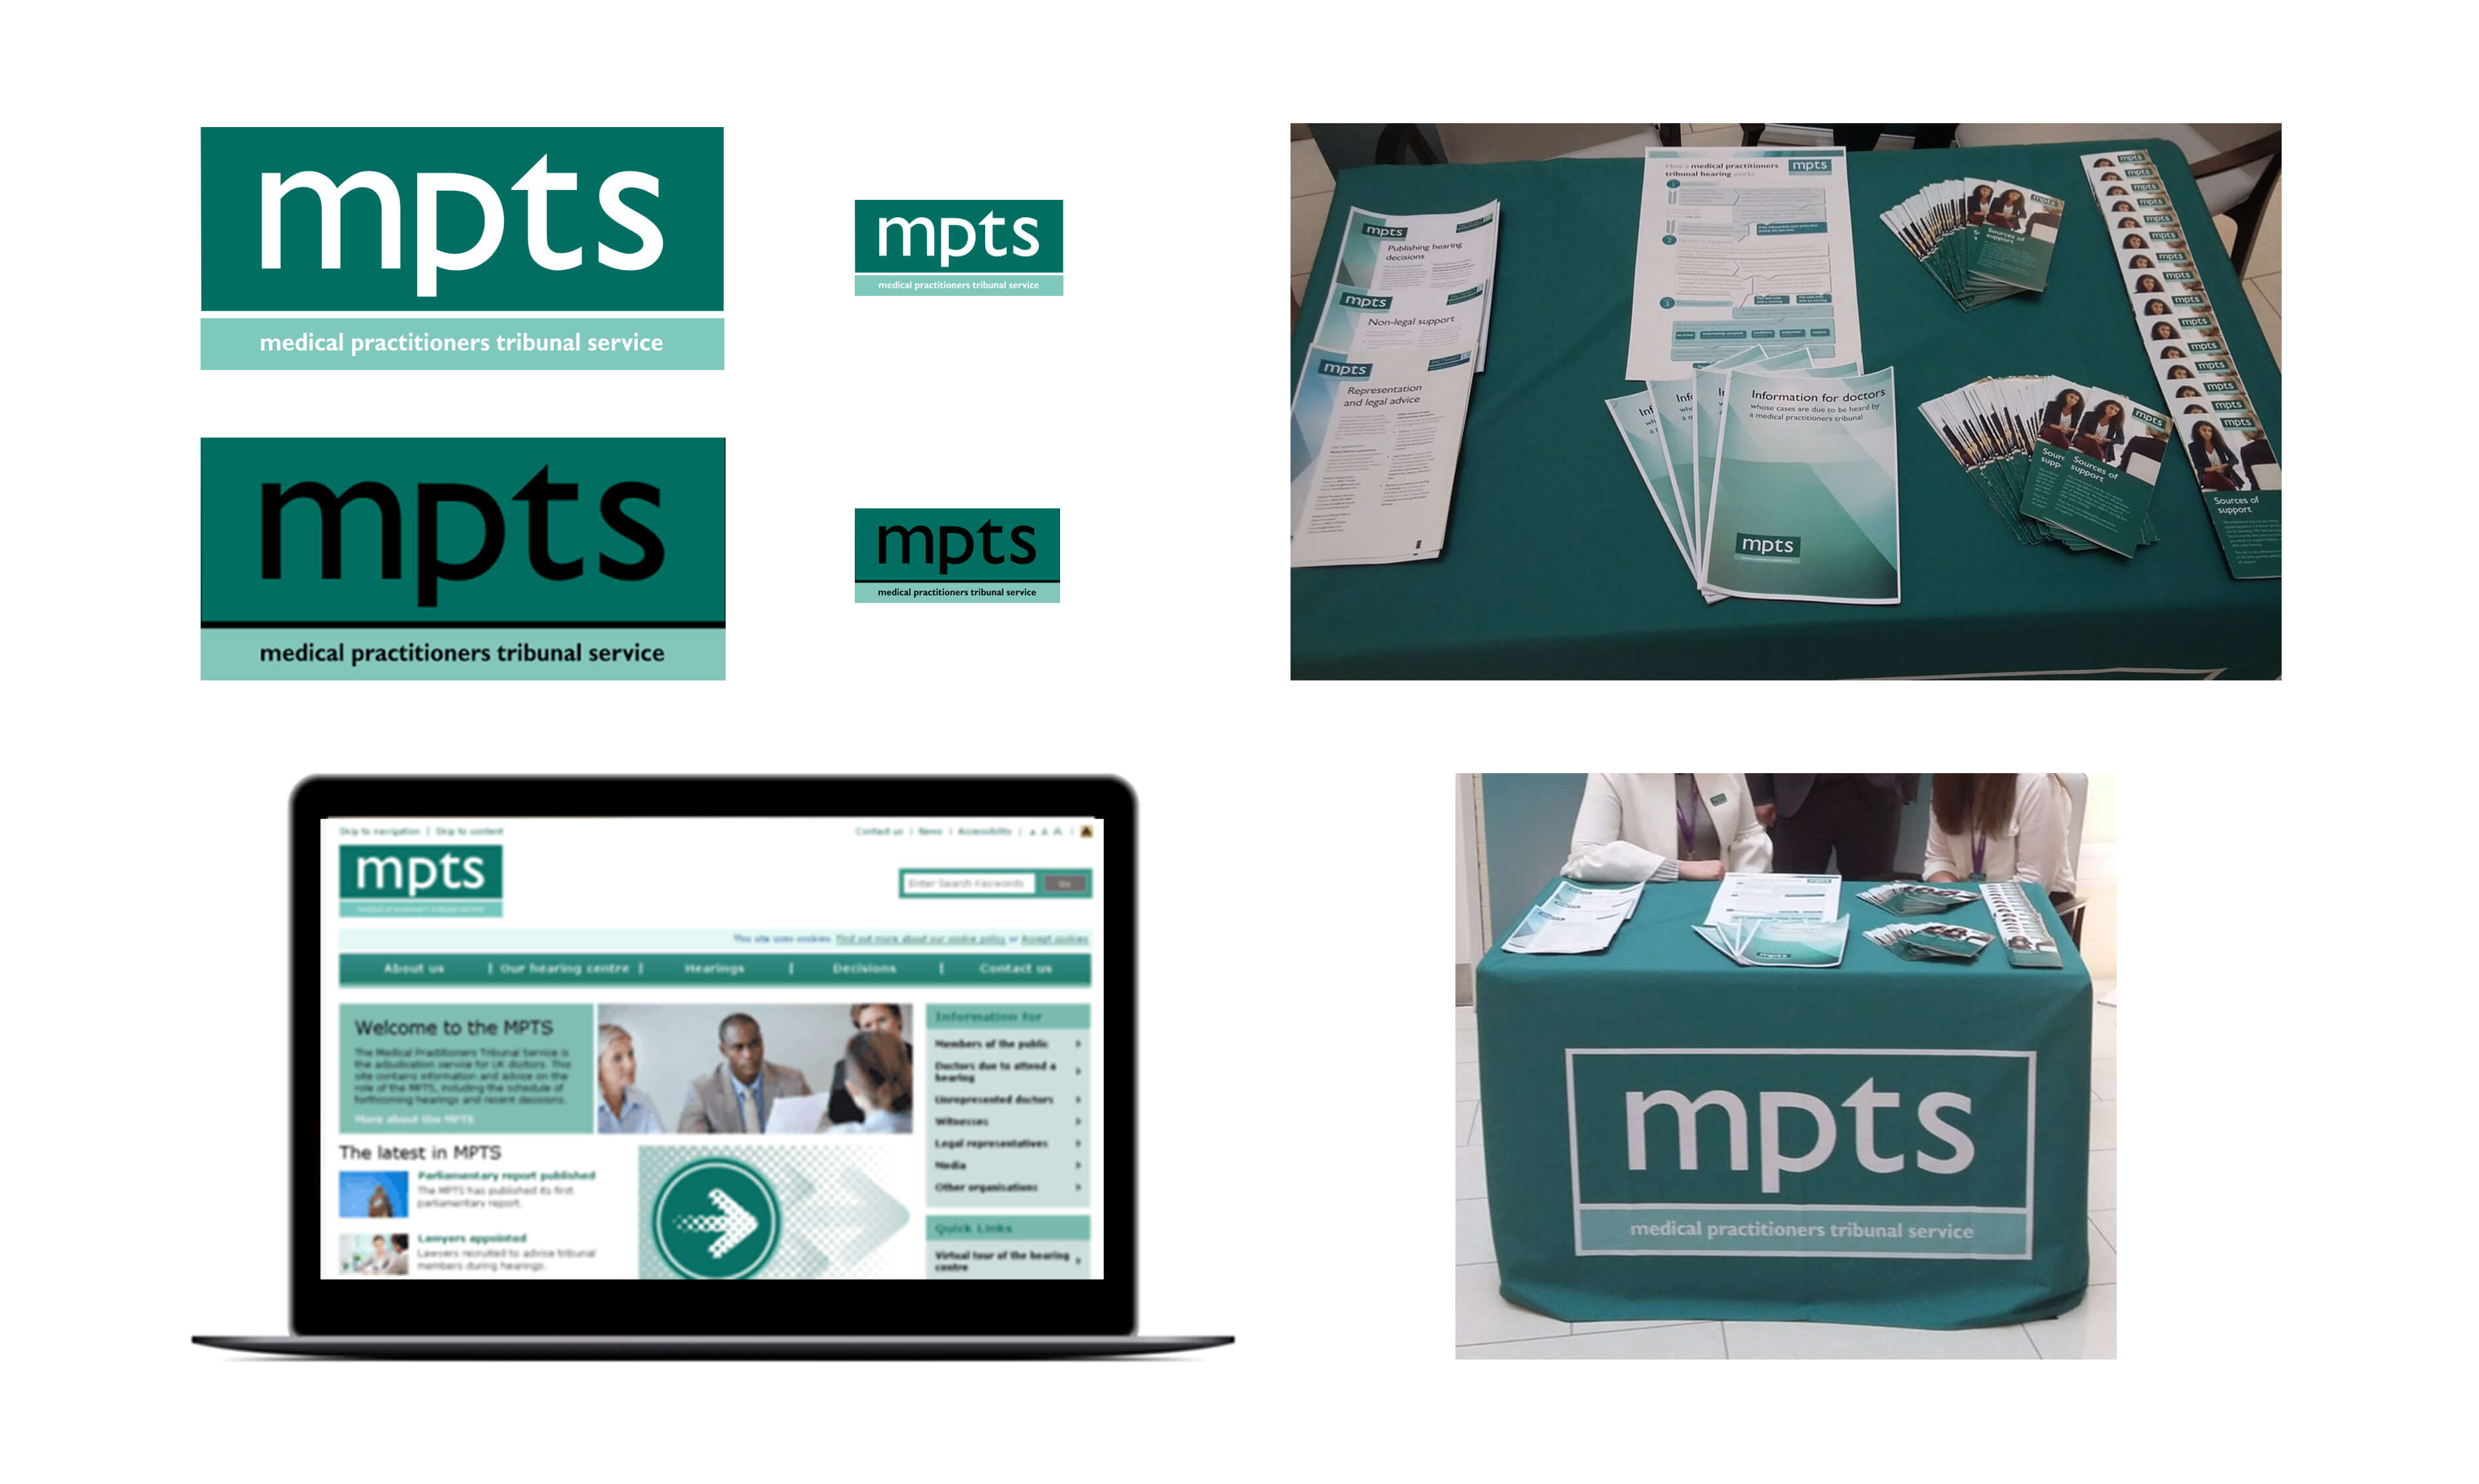 MPTS old identity